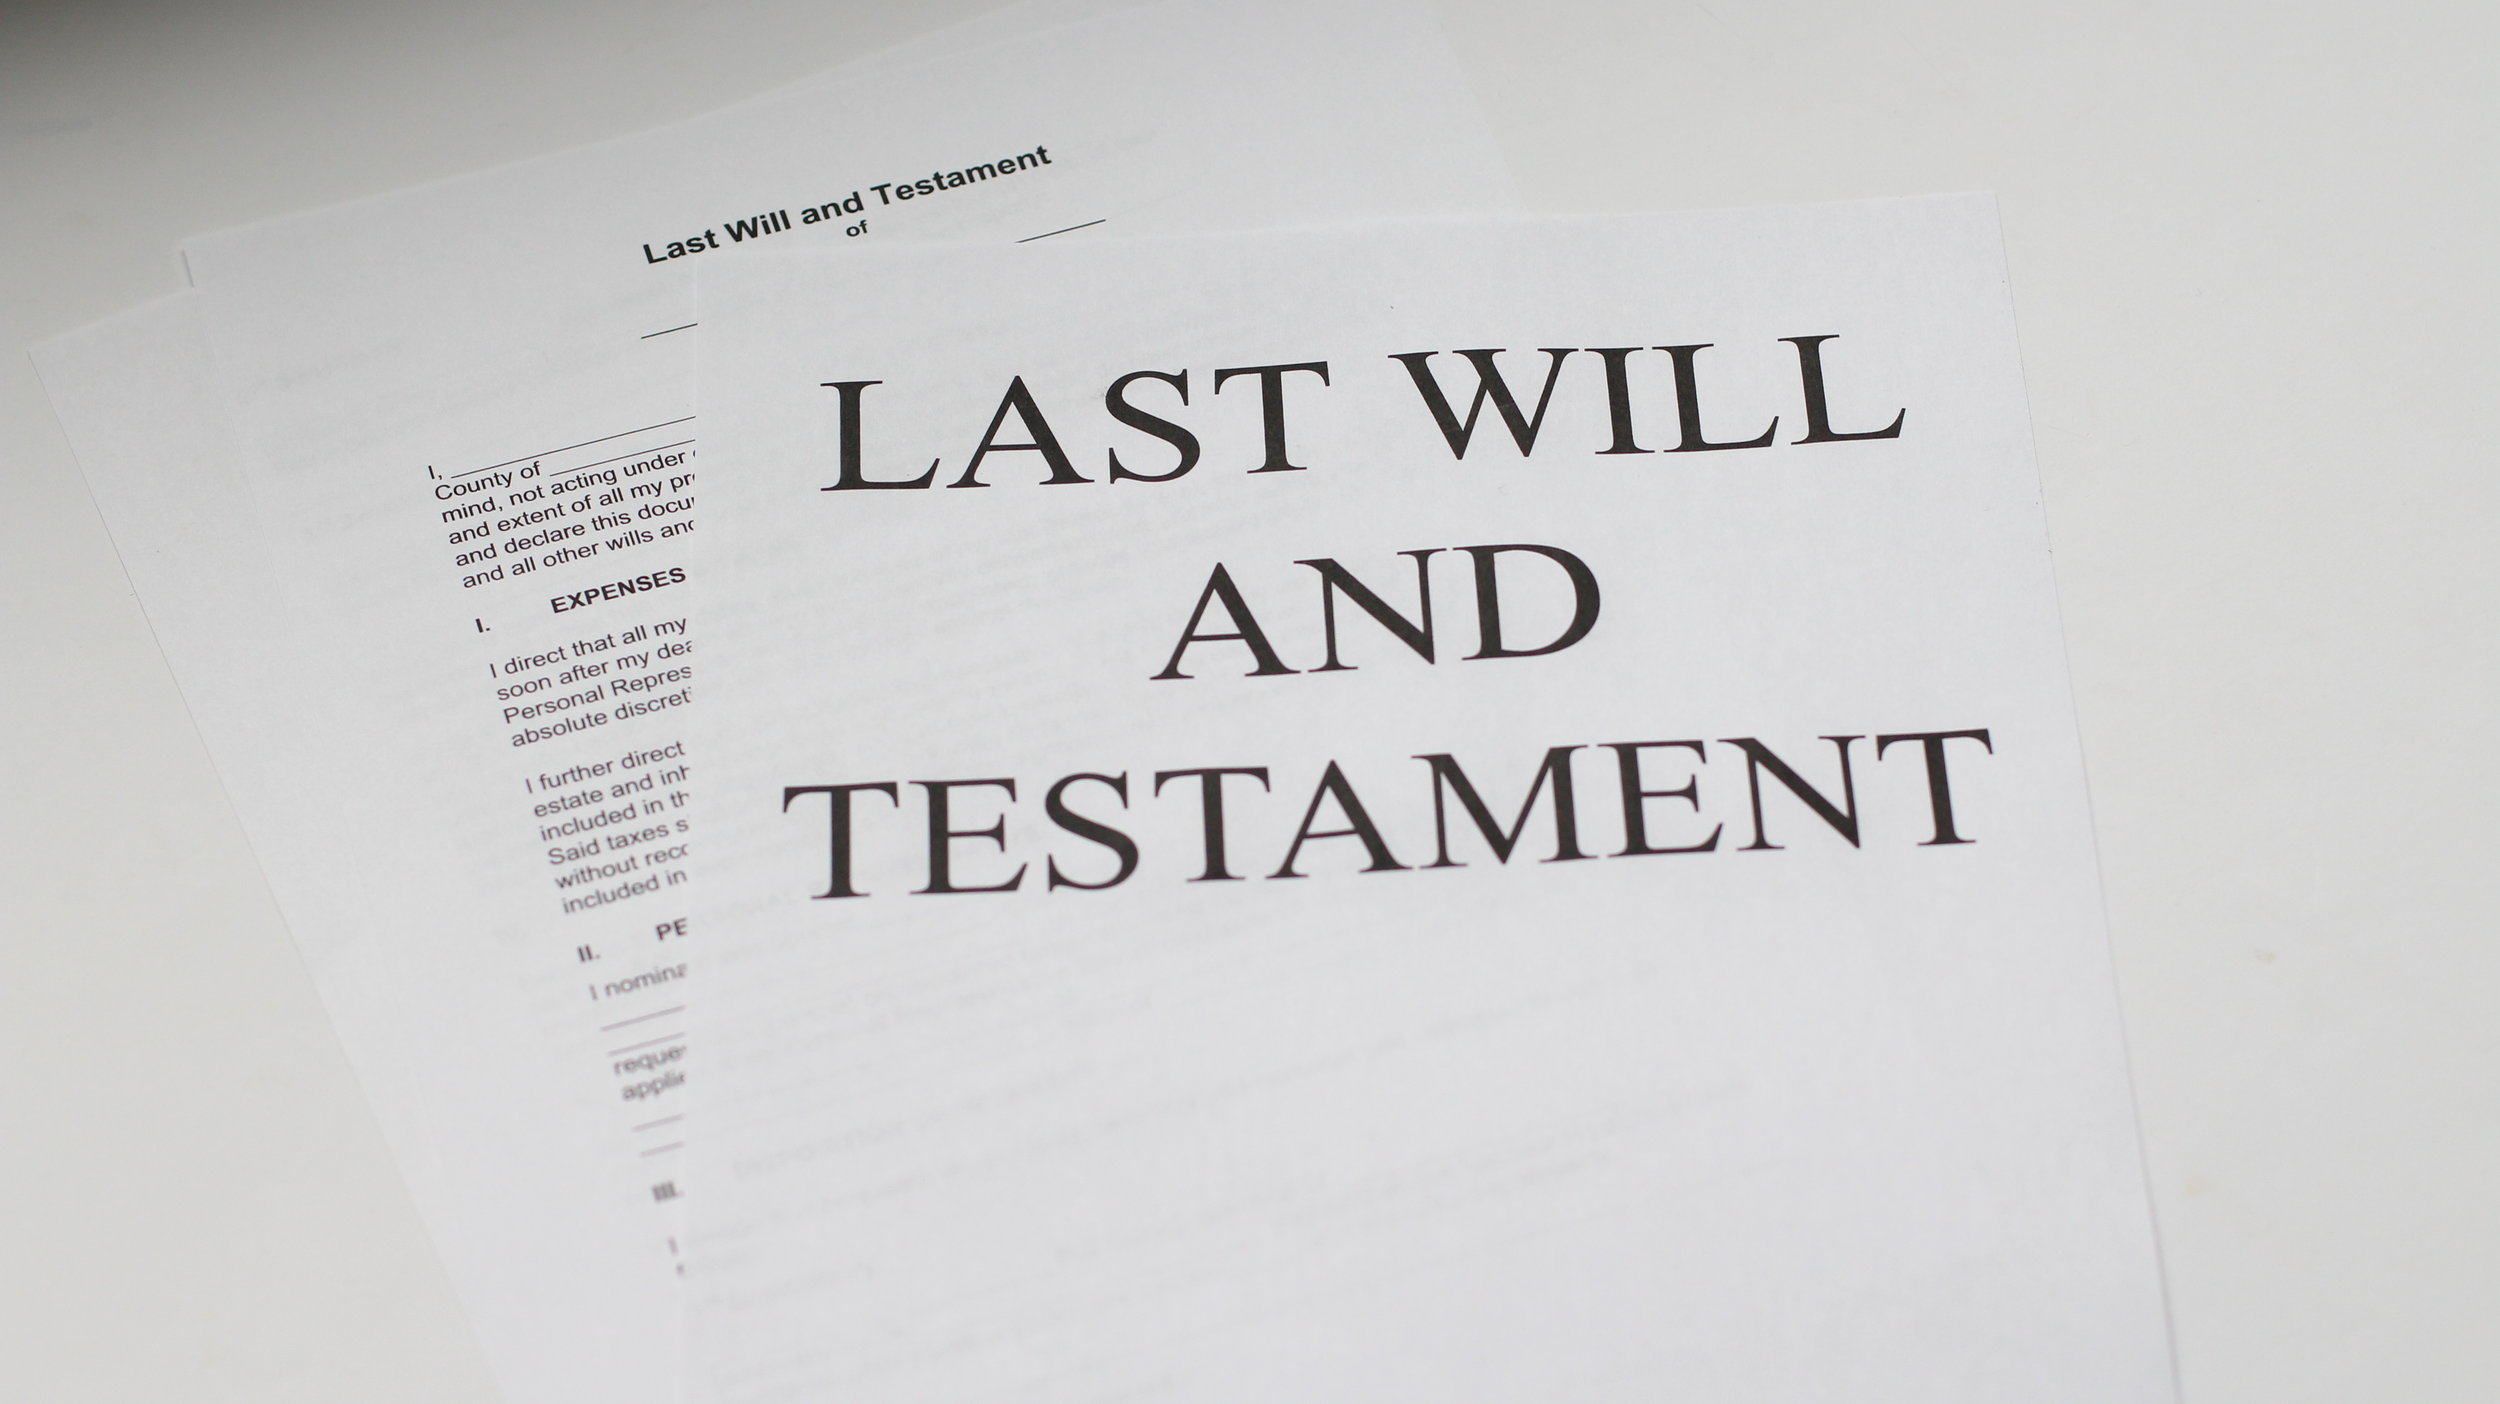 Learn About Wills - There are a variety of ways to plan for your family and loved ones with a will or living trust. View the presentations below to learn more about wills and estate planning.